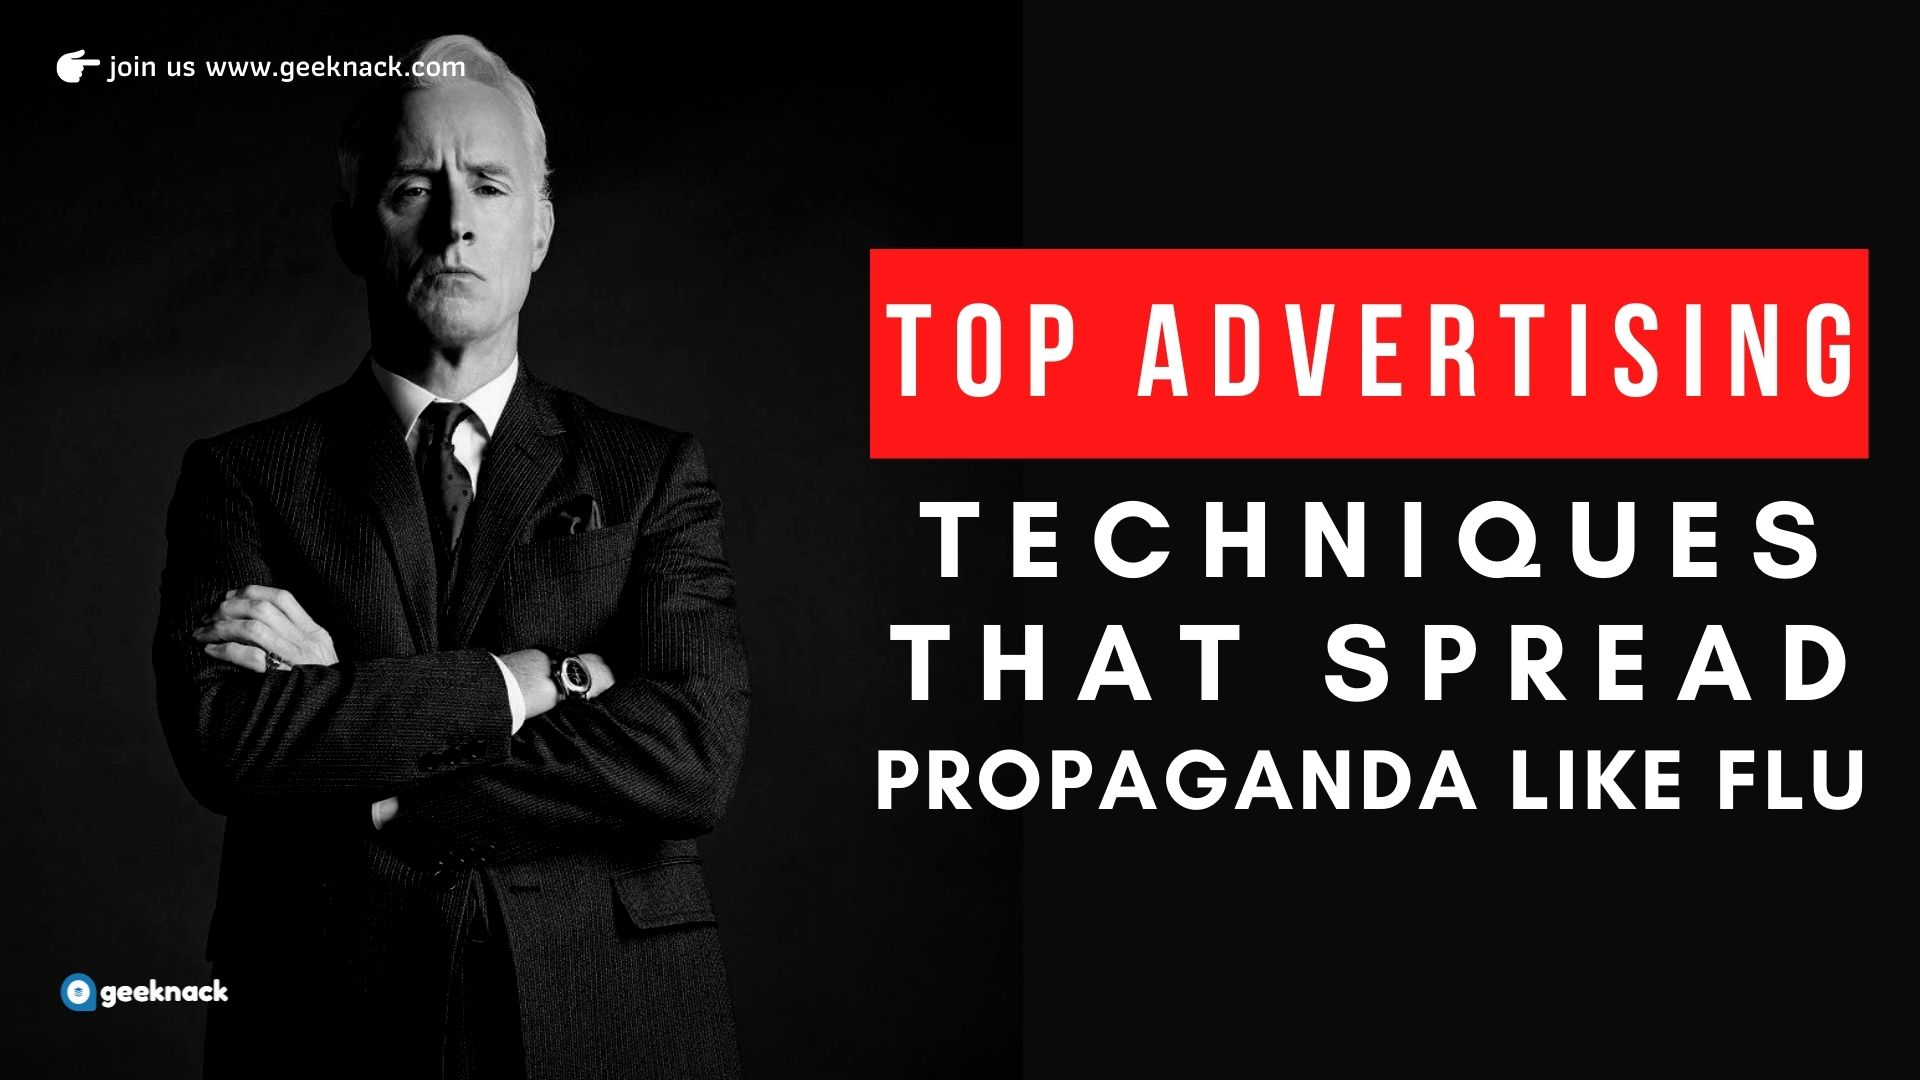 Top Advertising Techniques That Spread Propaganda Like Flu